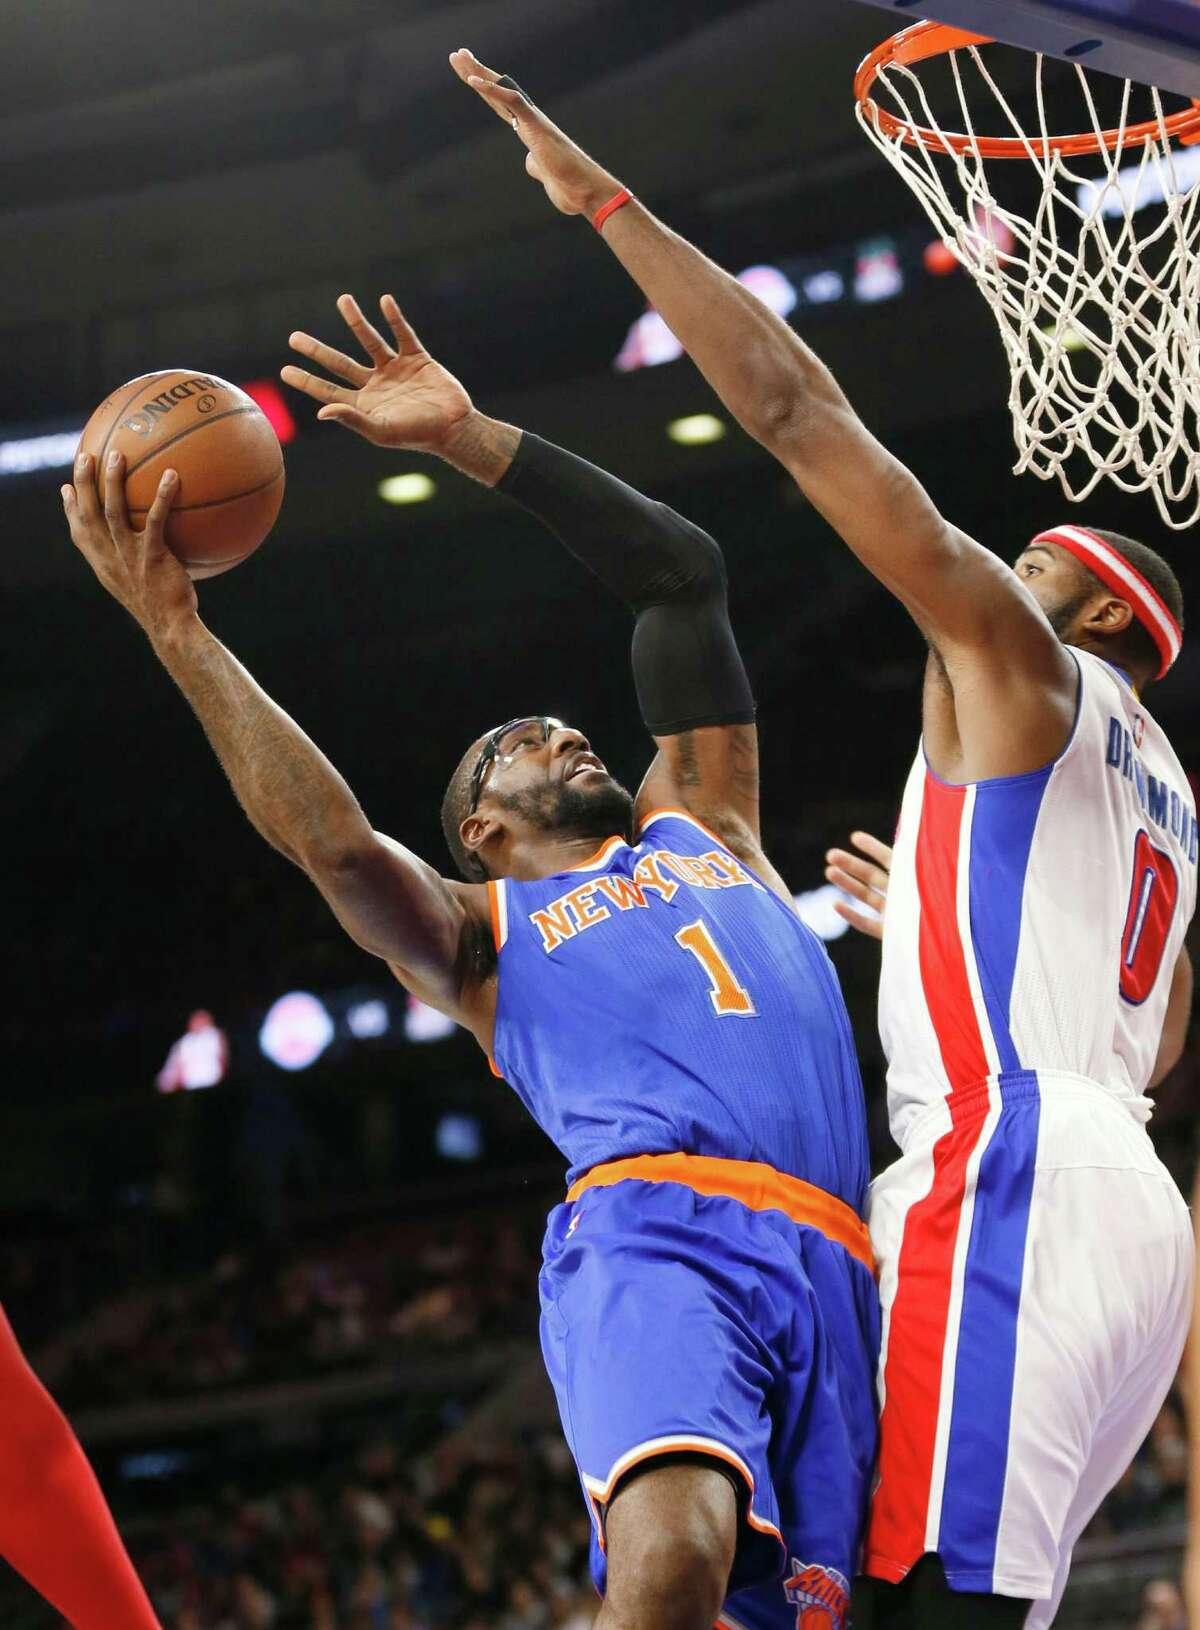 New York Knicks forward Amar'e Stoudemire (1) drives on Detroit Pistons center Andre Drummond (0) in the first half of an NBA basketball game in Auburn Hills, Mich., Wednesday, Nov. 5, 2014. (AP Photo/Paul Sancya) ORG XMIT: MIPS101